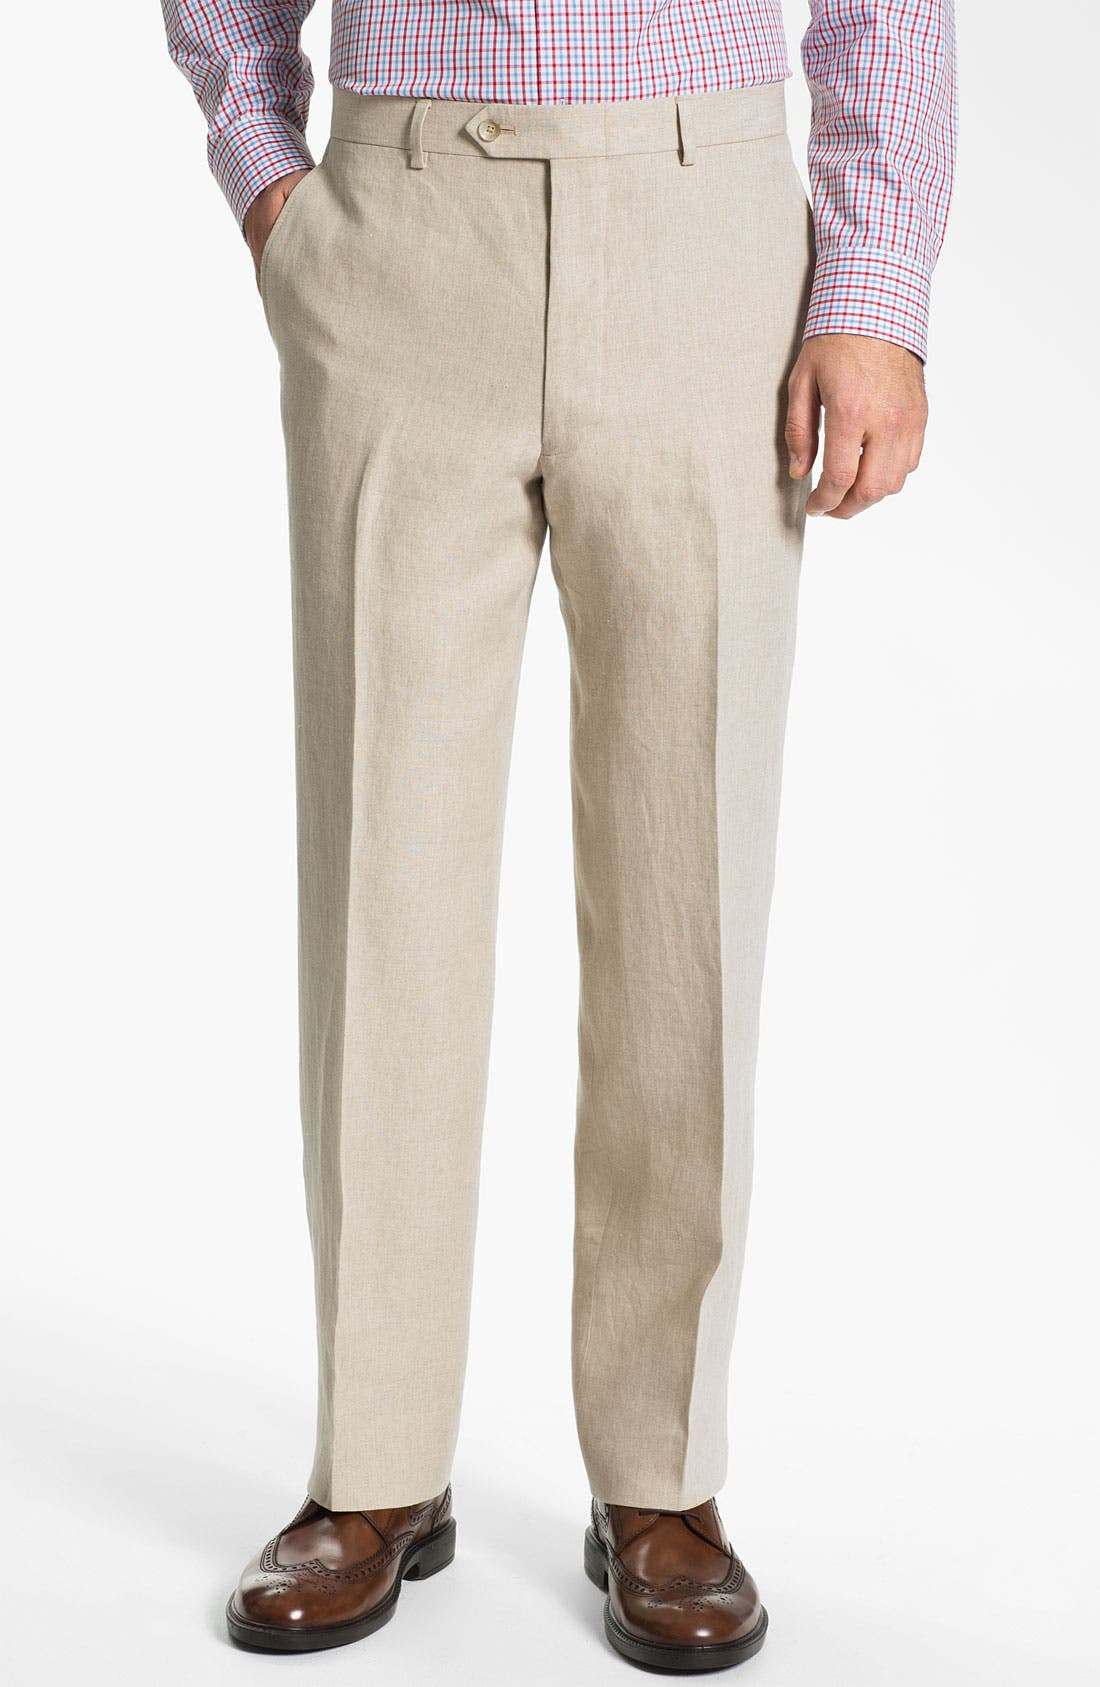 Alternate Image 1 Selected - John W. Nordstrom® Flat Front Linen Pants